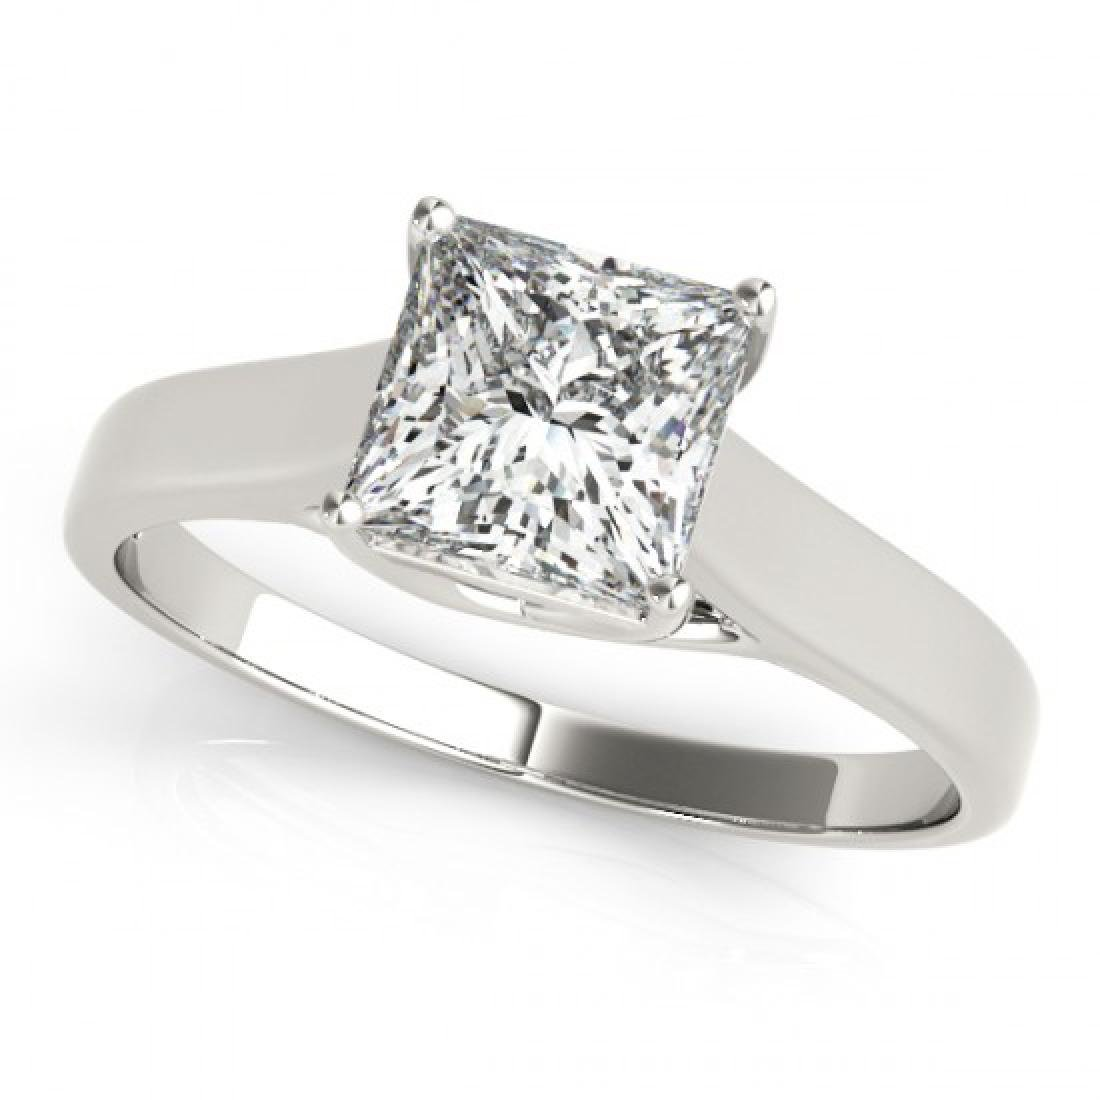 0.75 CTW Certified VS/SI Princess Diamond Ring 14K - 2